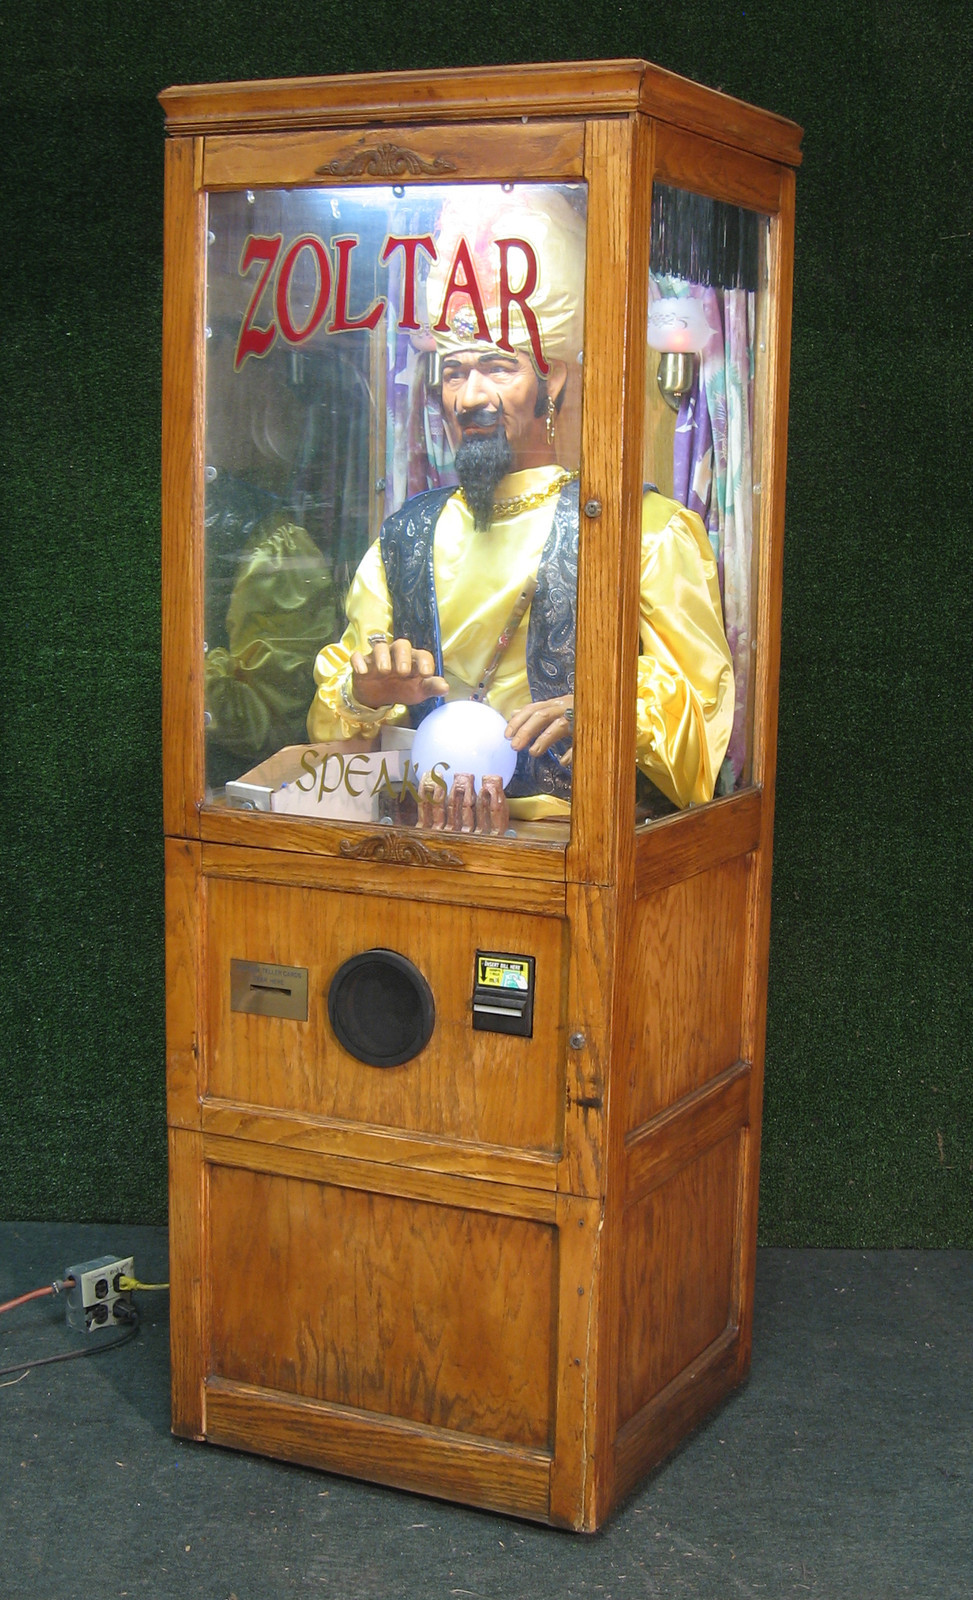 Zoltar Coin Operated Fortune Teller Dollar A Play ... Crystal Ball Fortune Teller